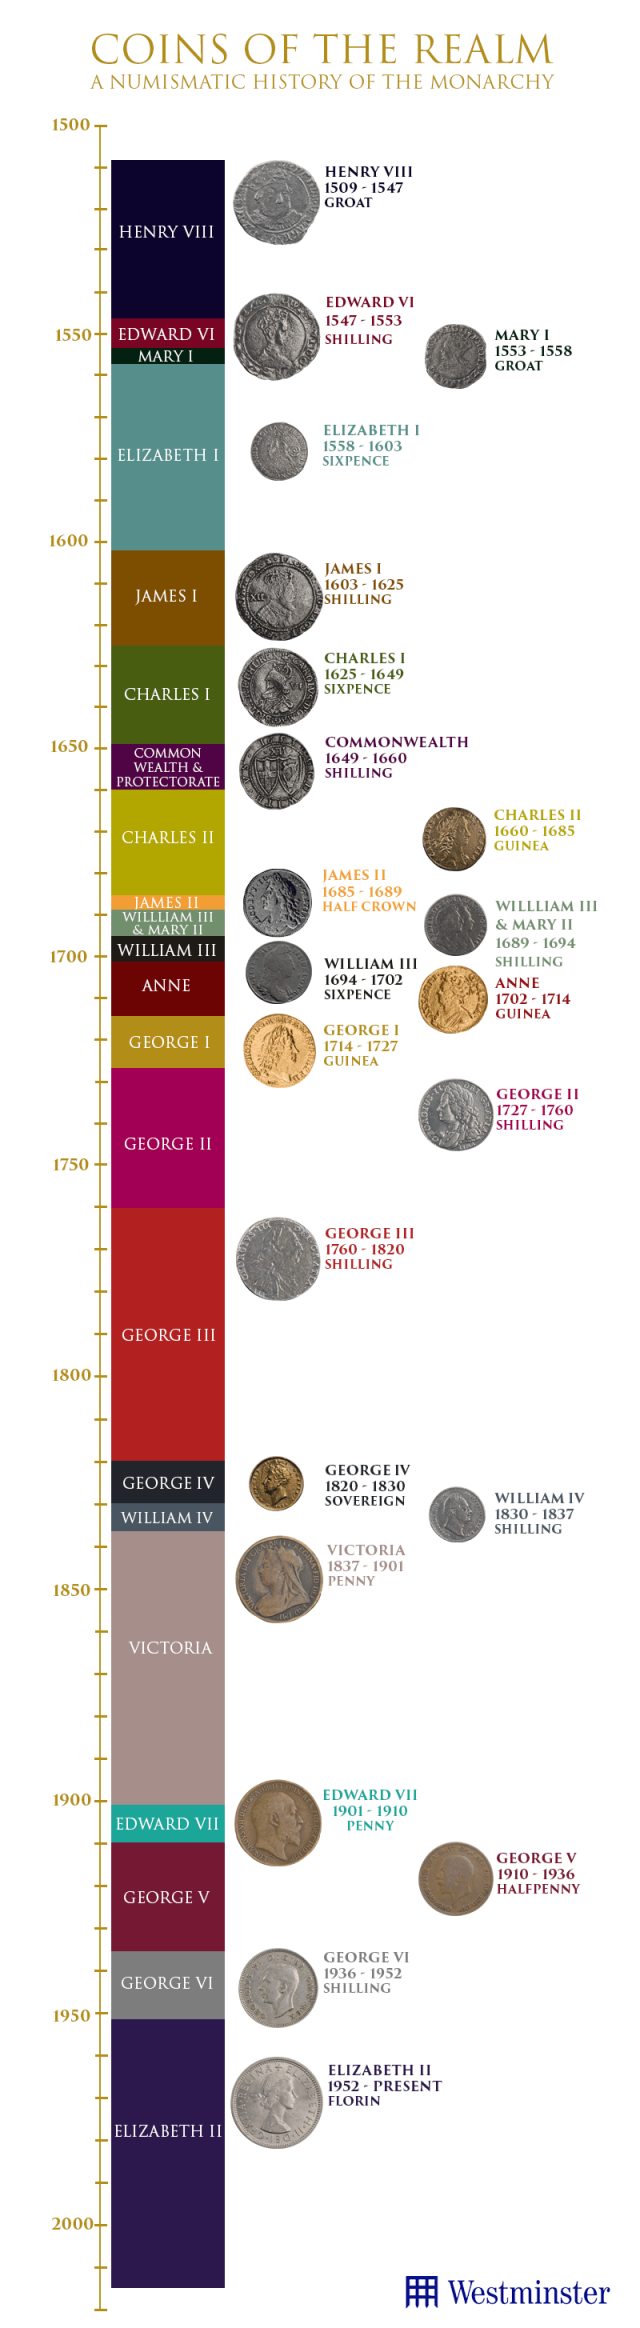 A Numismatic Timeline of British and English King & Queens - featuring 22 coins